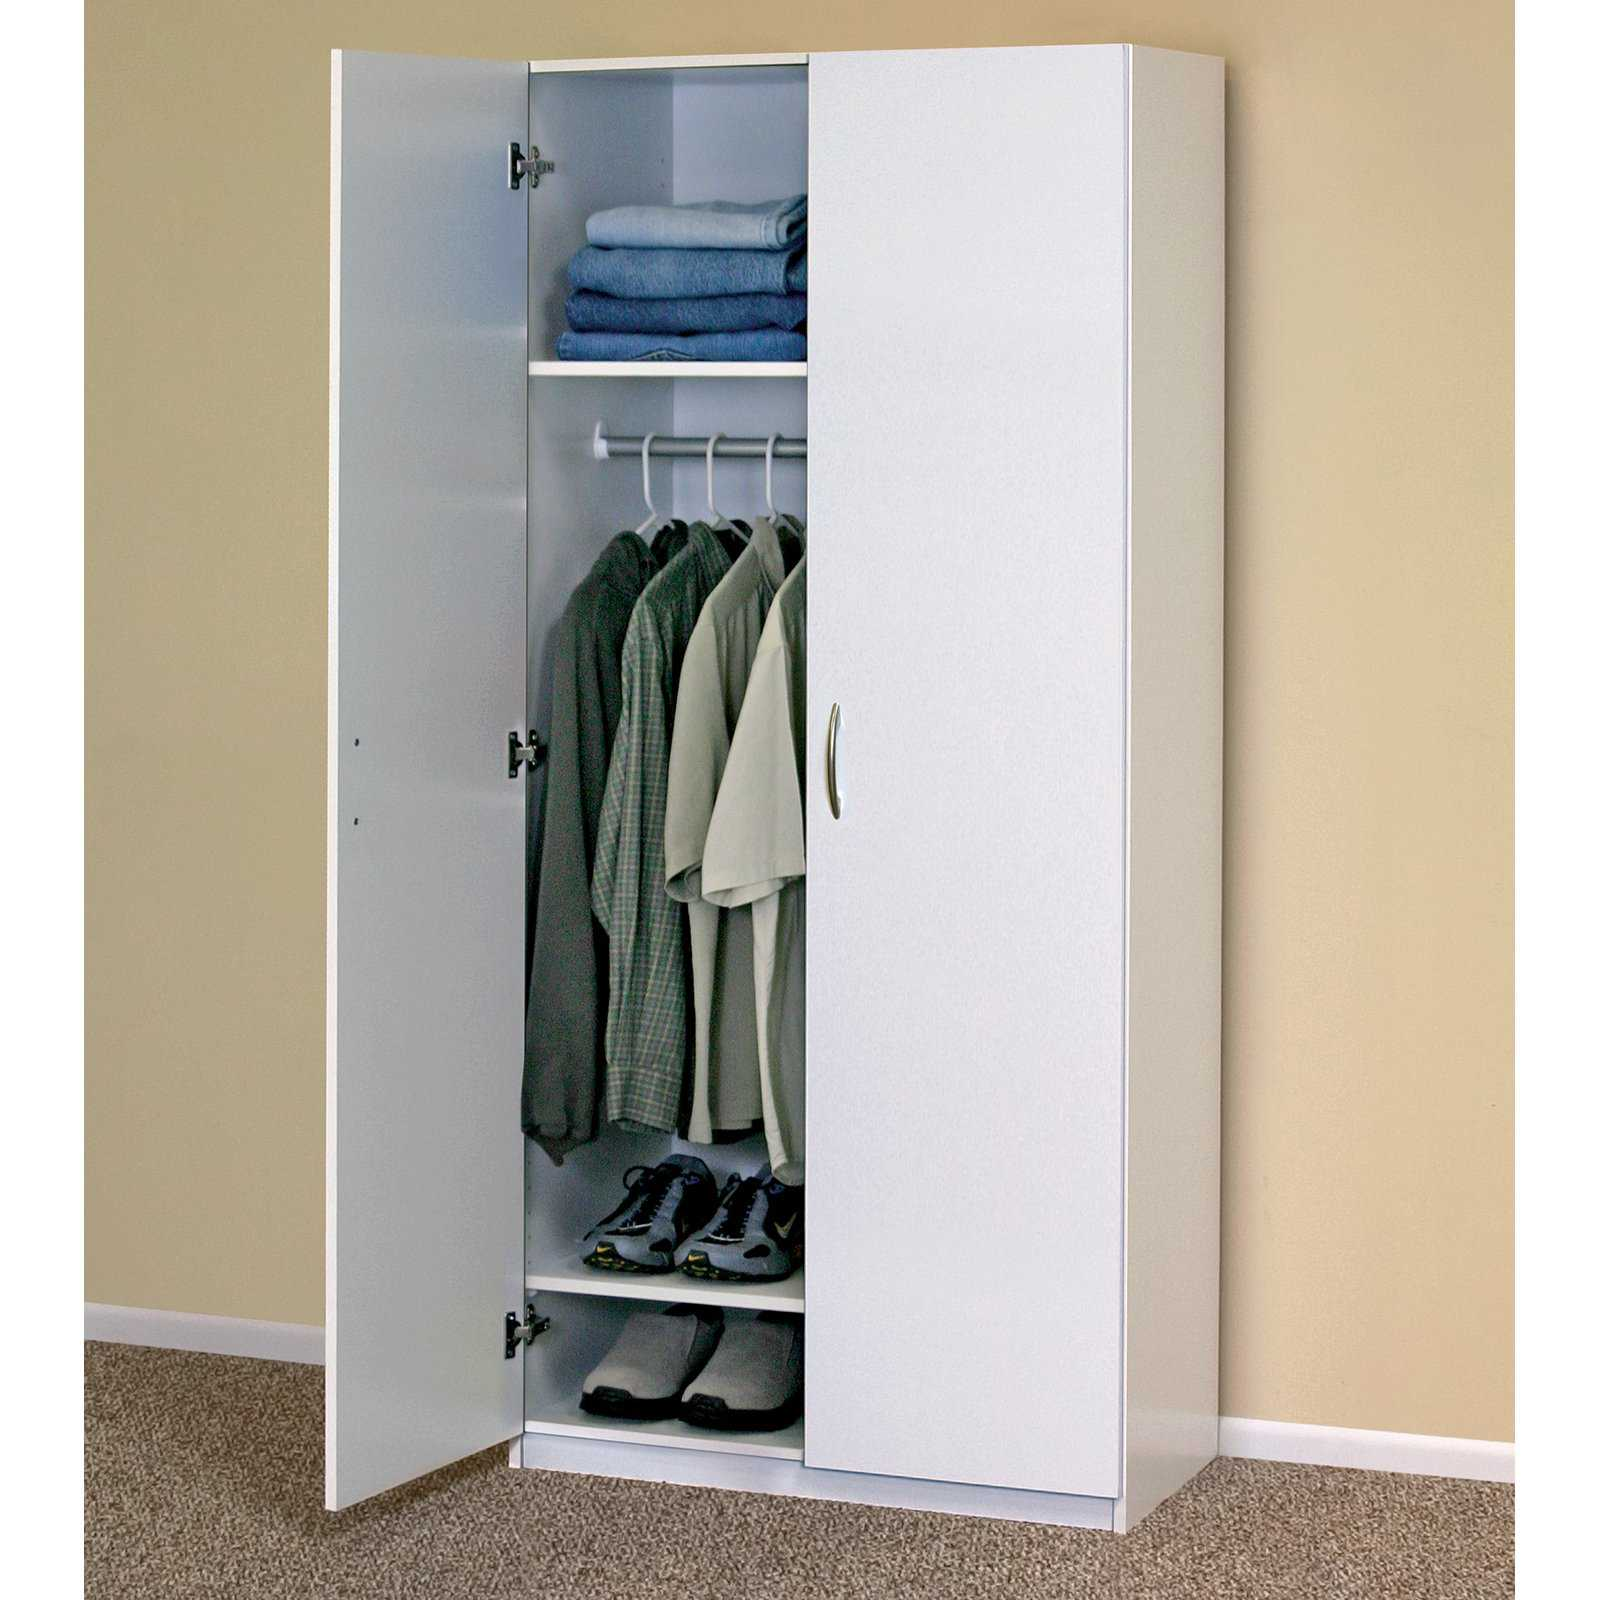 ClosetMaid Flat Panel 30 in. Freestanding Wardrobe Cabinet